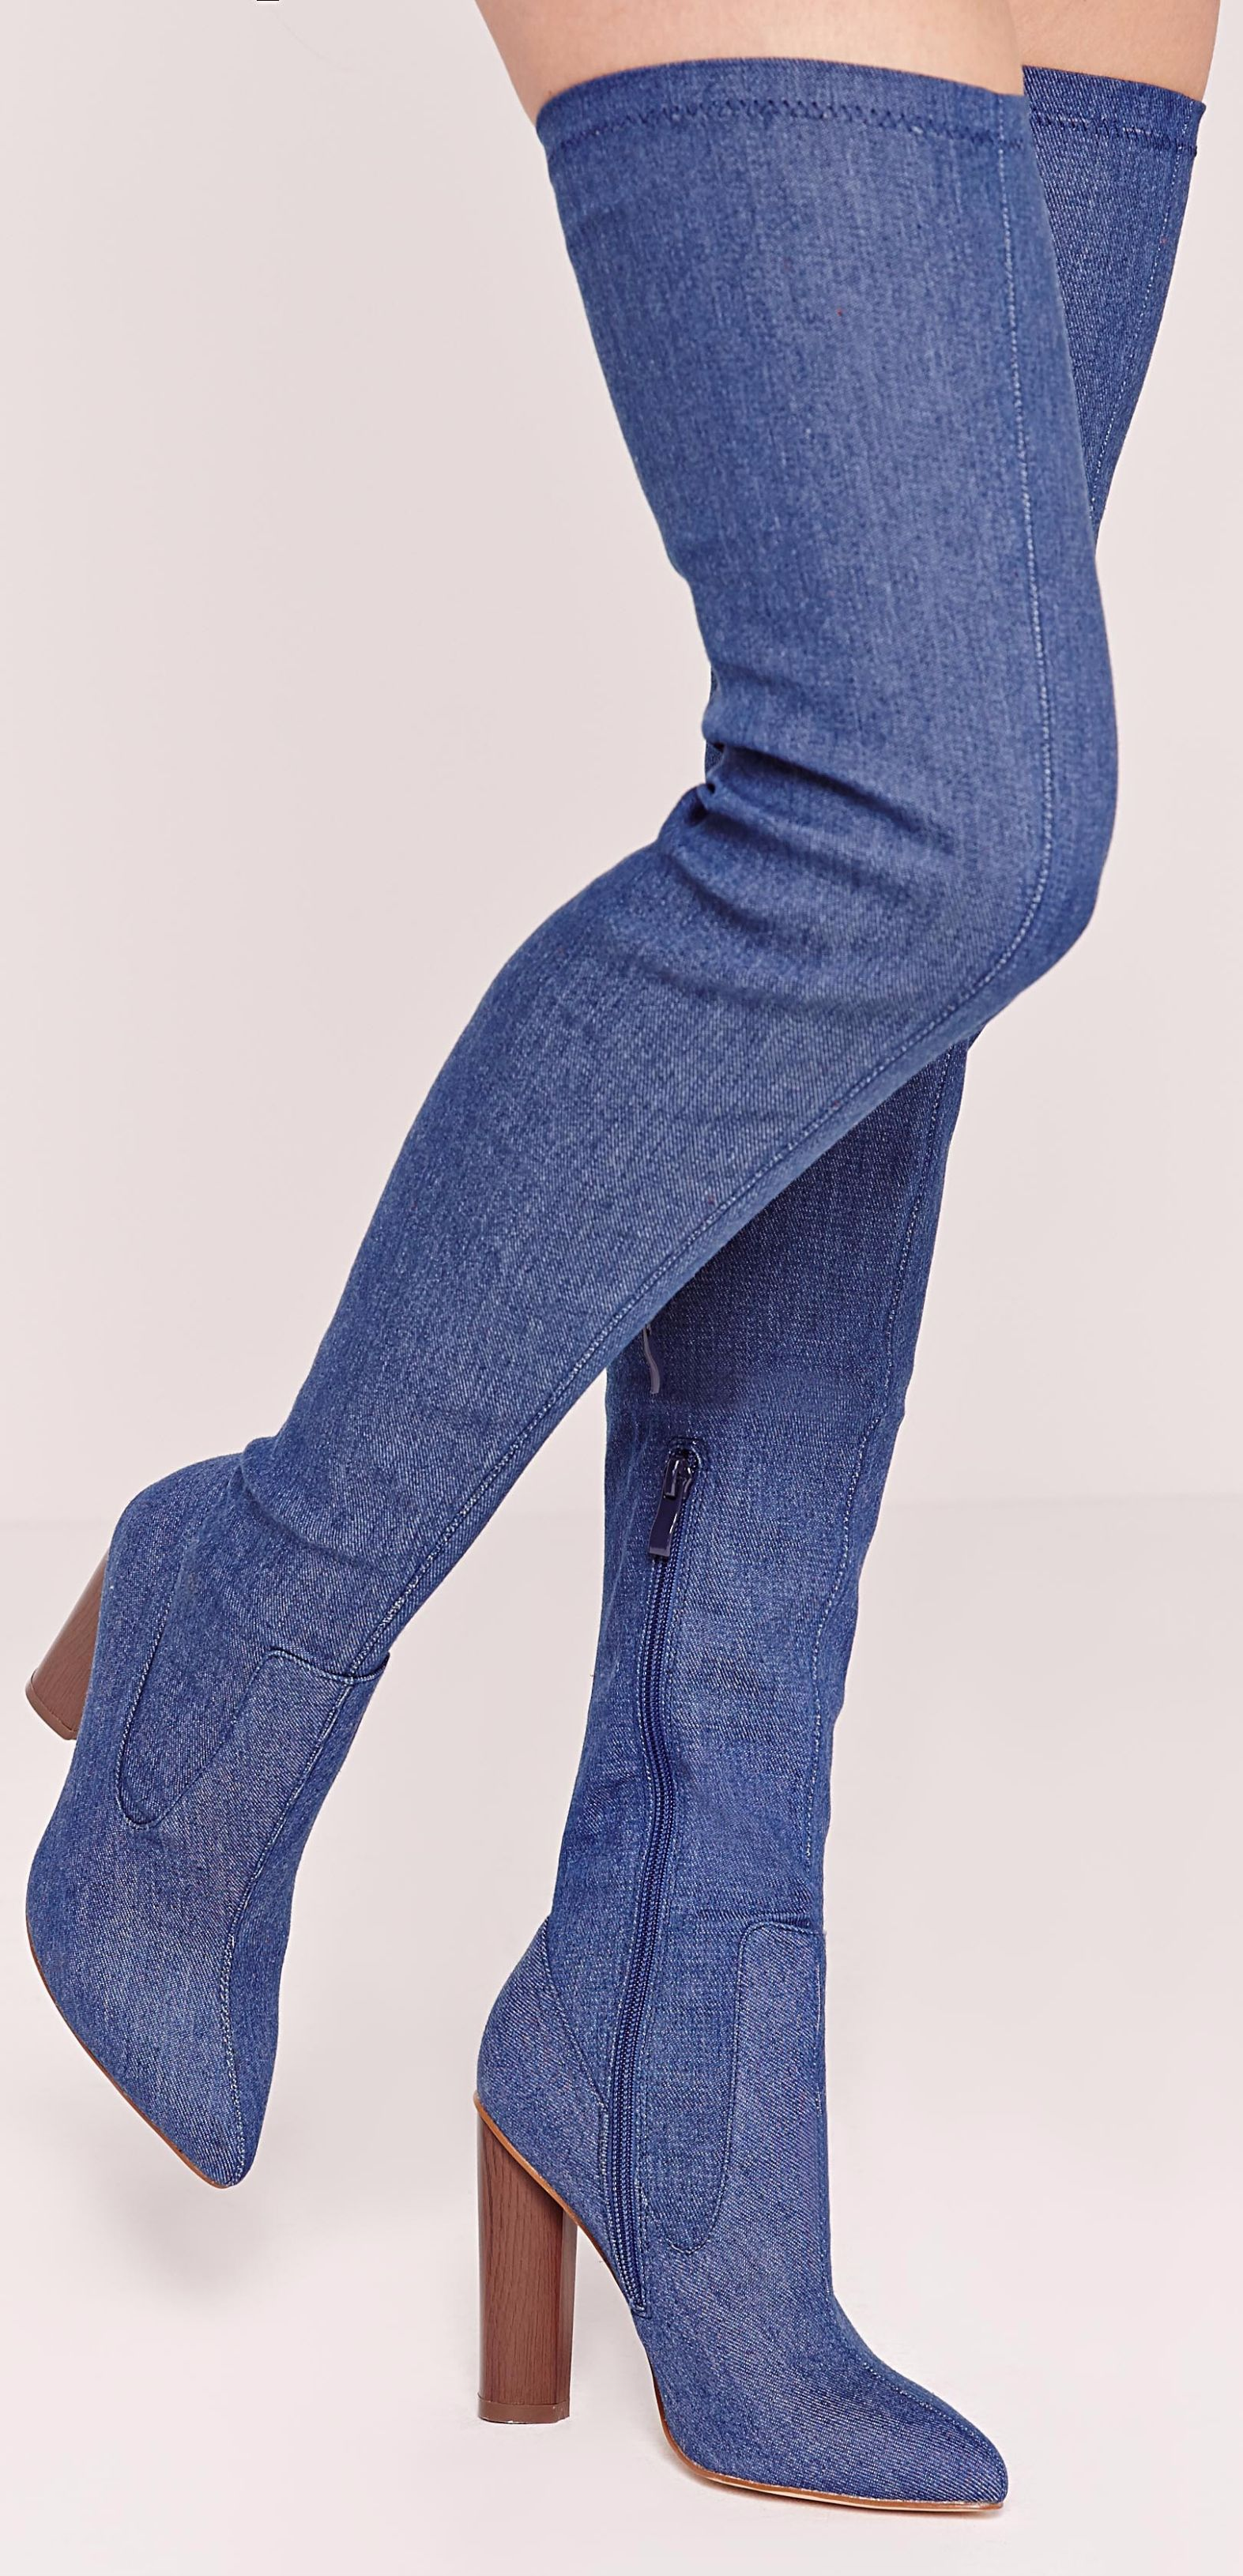 517aba8881e5 This is a must-have in every fashionista's closet. Like seriously this over  the knee denim boots is da bomb! (affiliate)